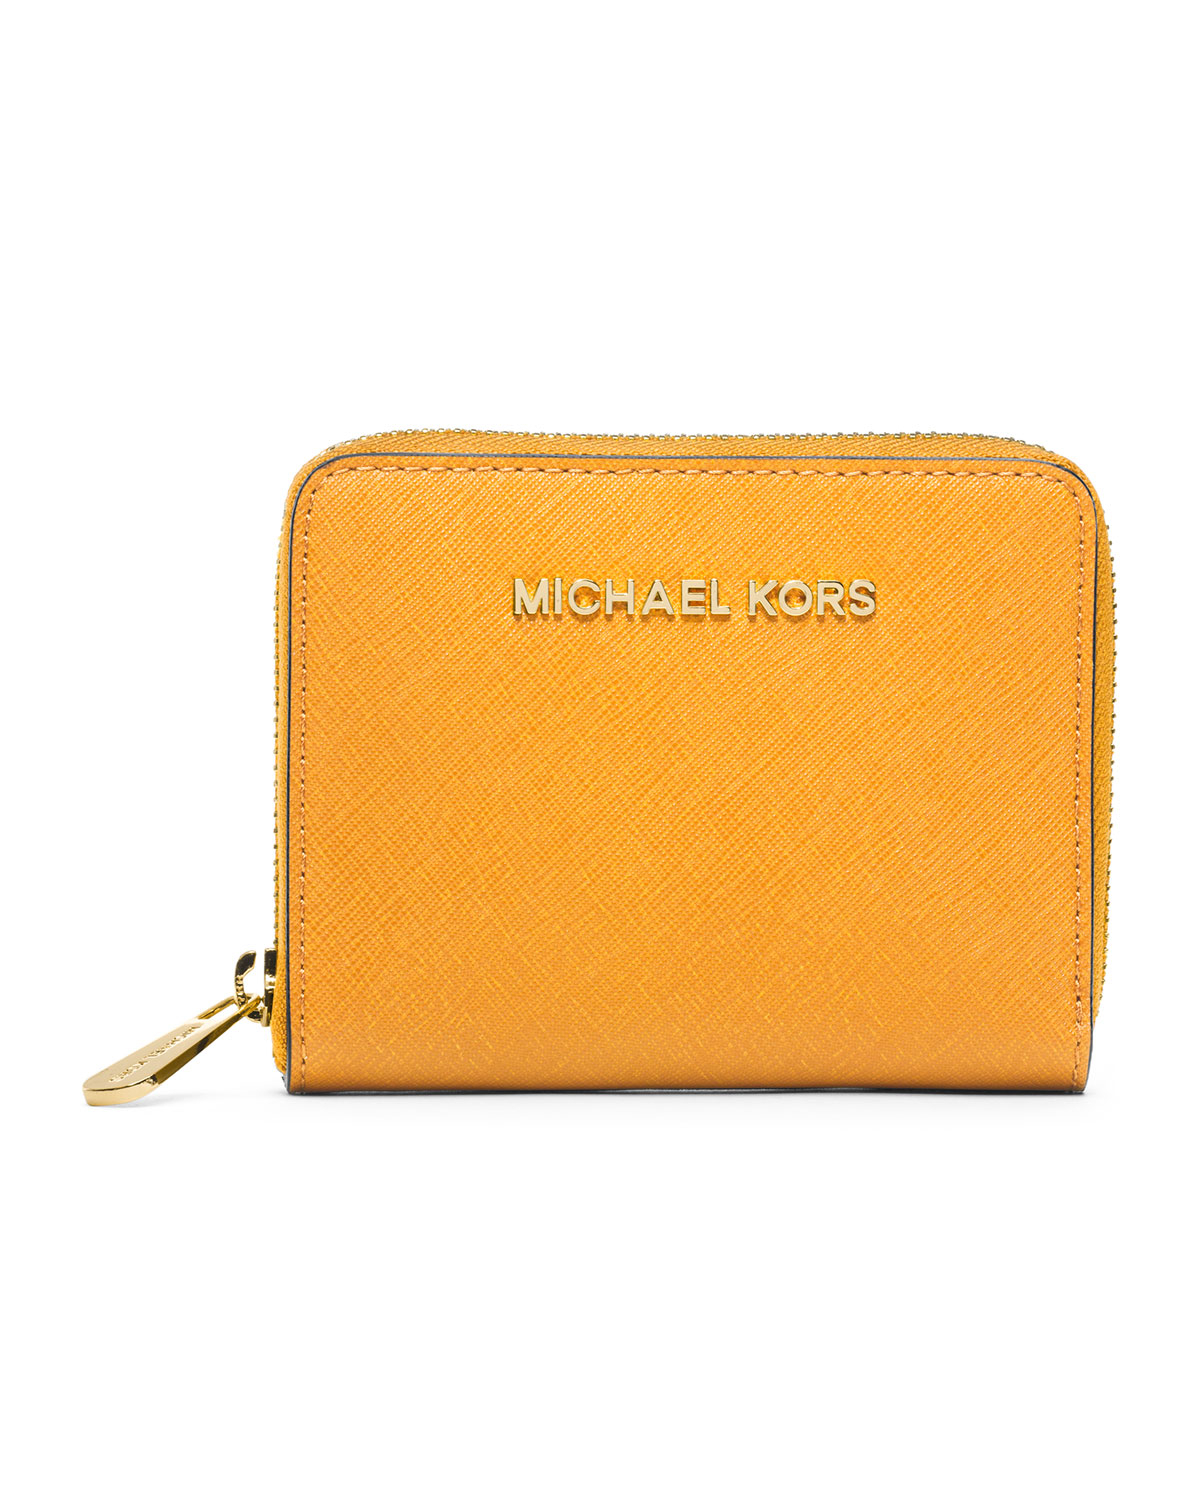 9d36020a4e278c Medium Michael Kors Wallet | Stanford Center for Opportunity Policy ...